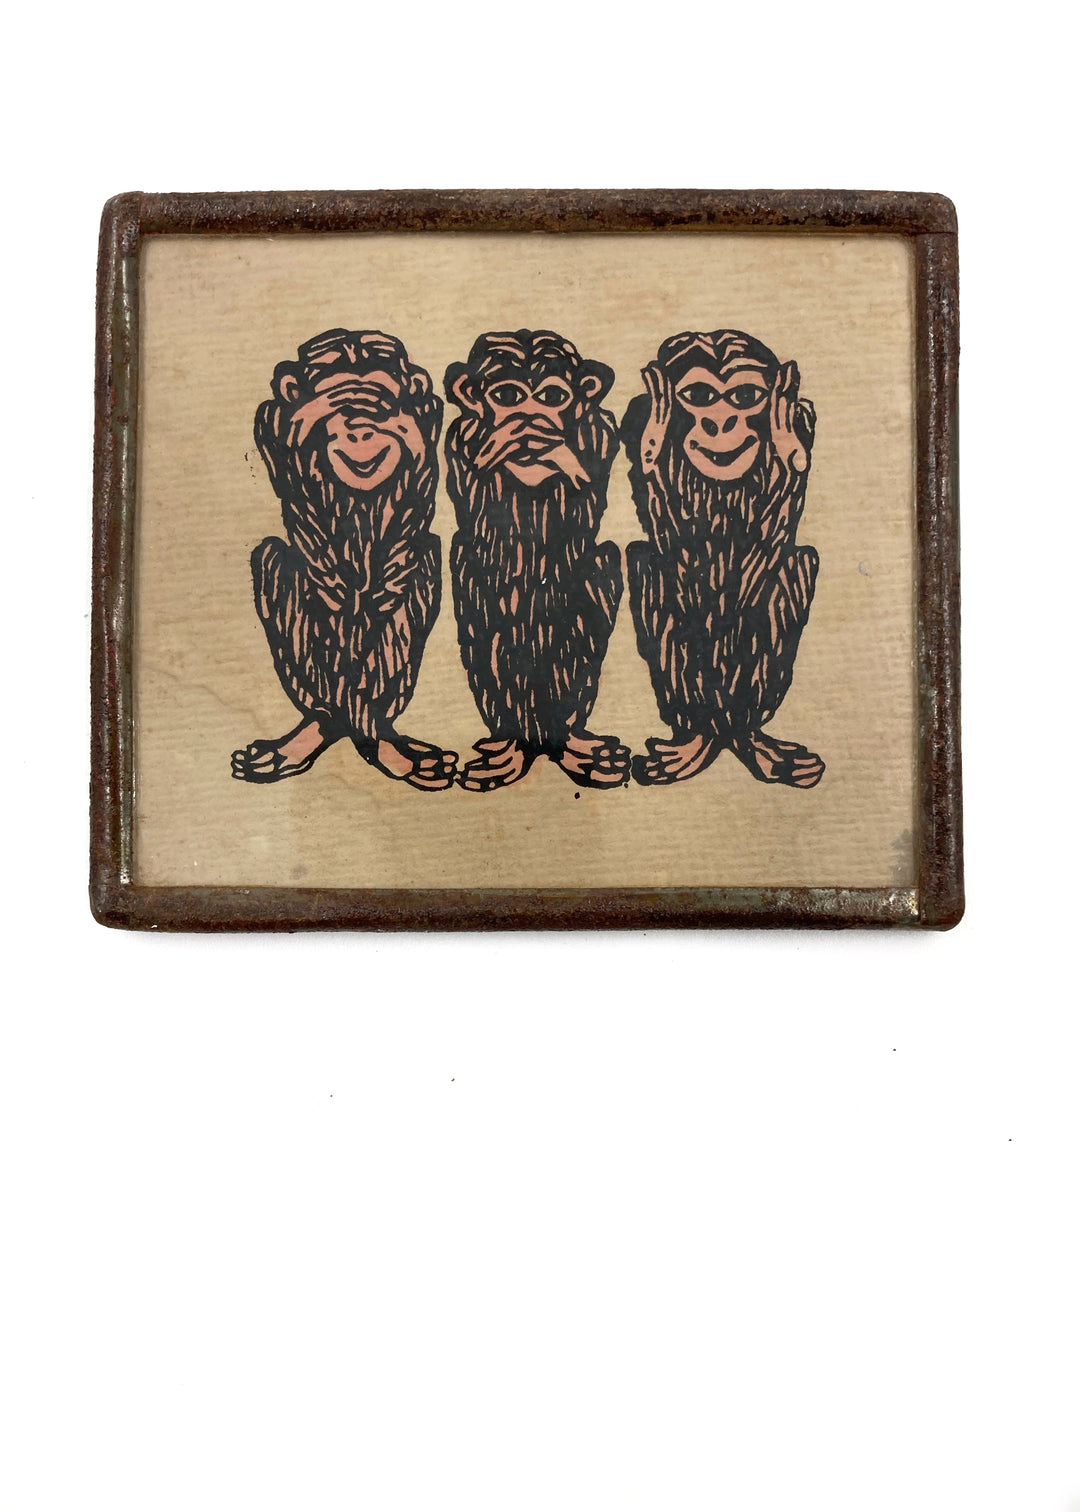 three wise monkeys framed miniature print